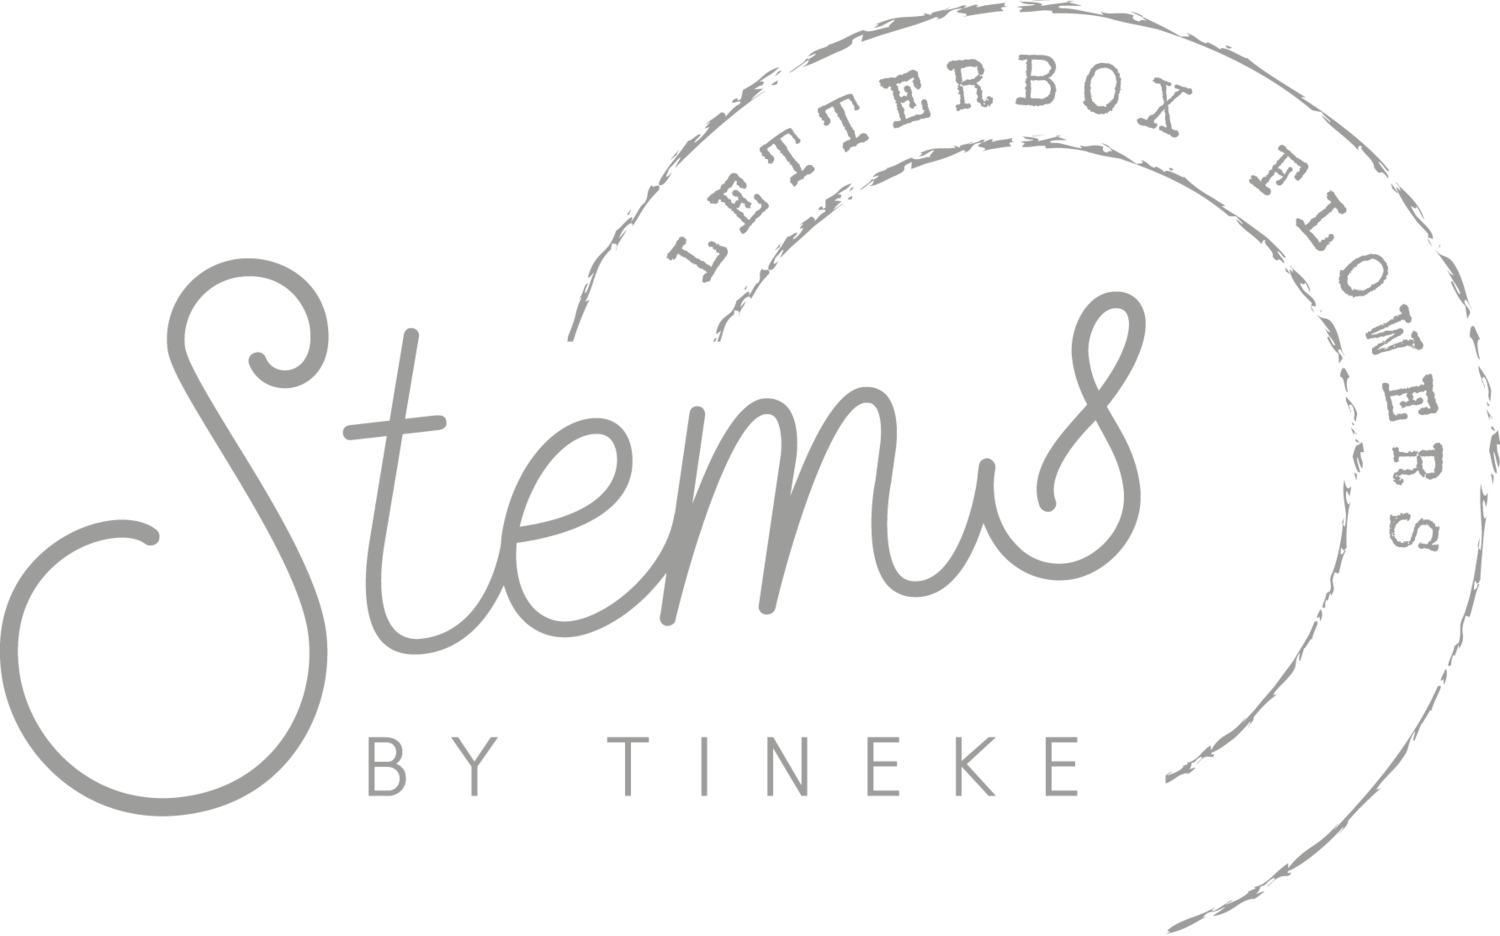 Stems by Tineke